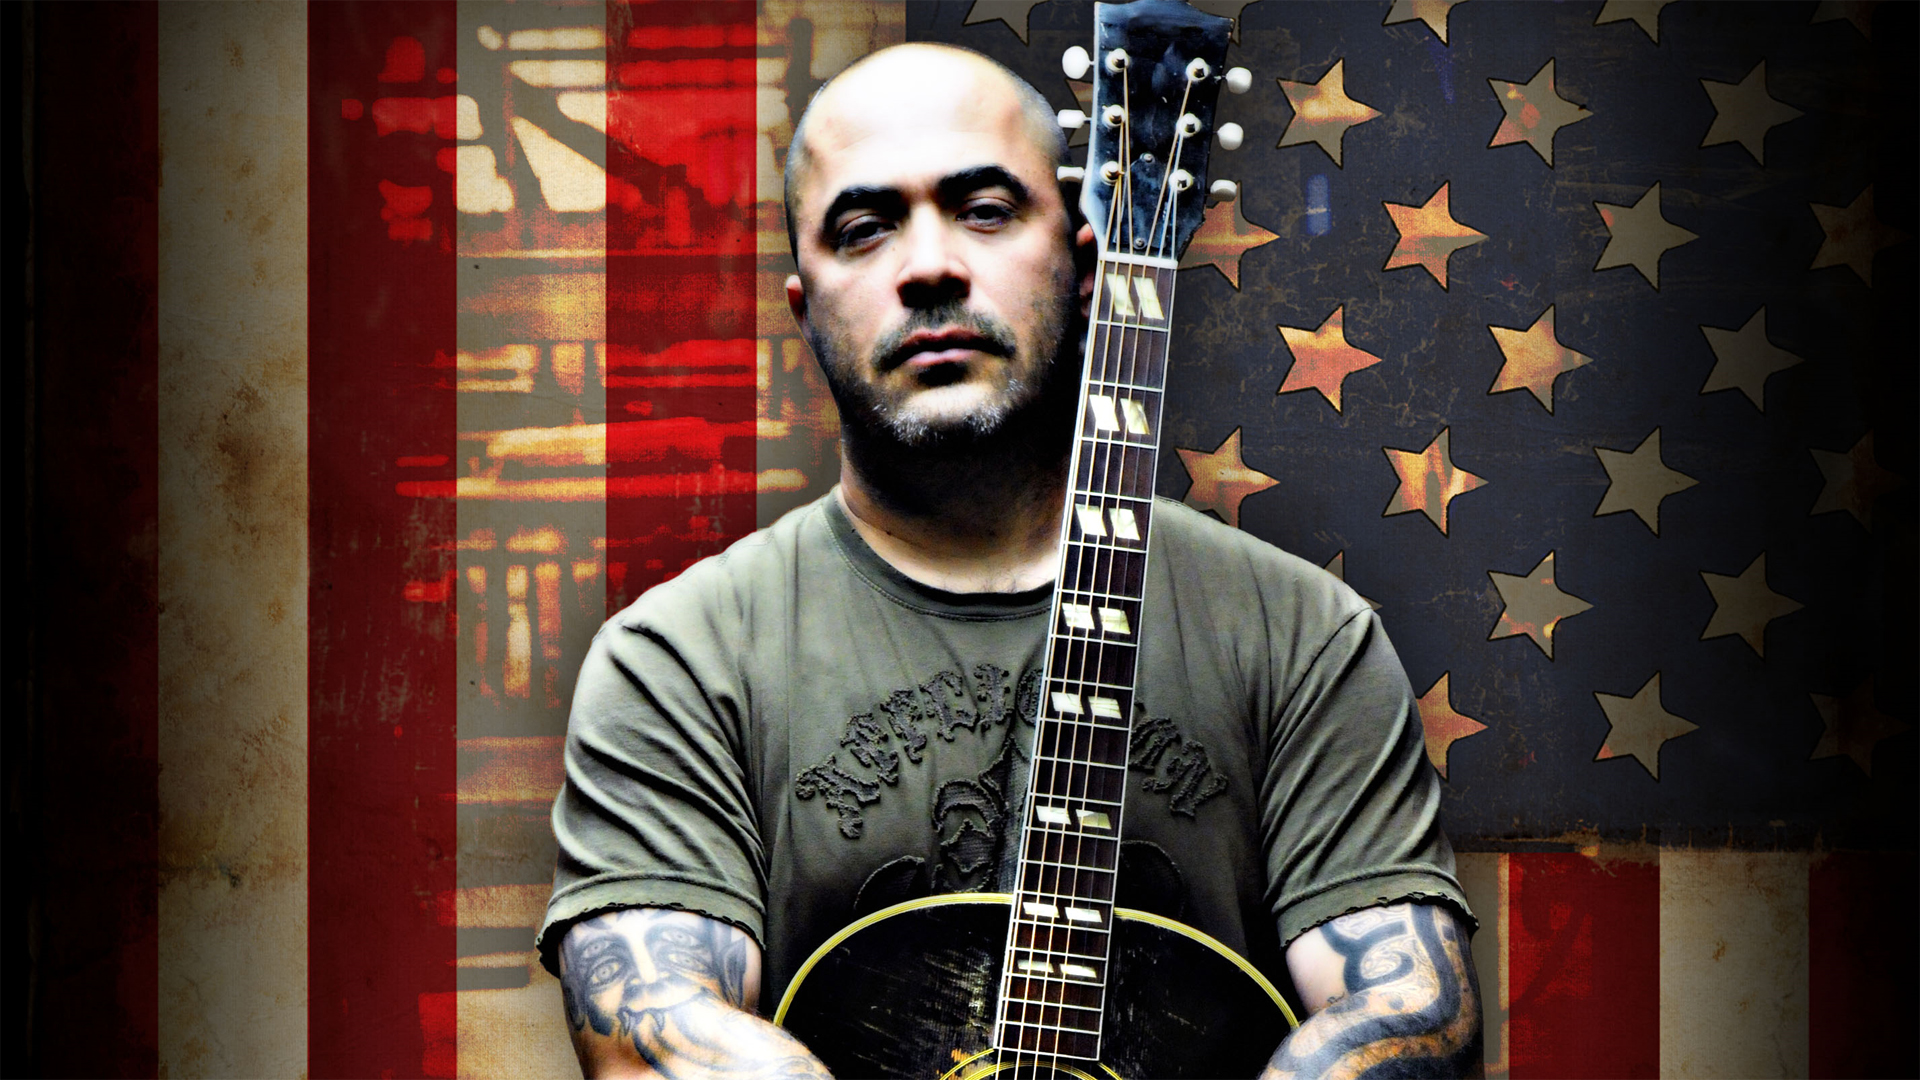 Former Staind front-man Aaron Lewis will perform at Town Ballroom on Feb 4.